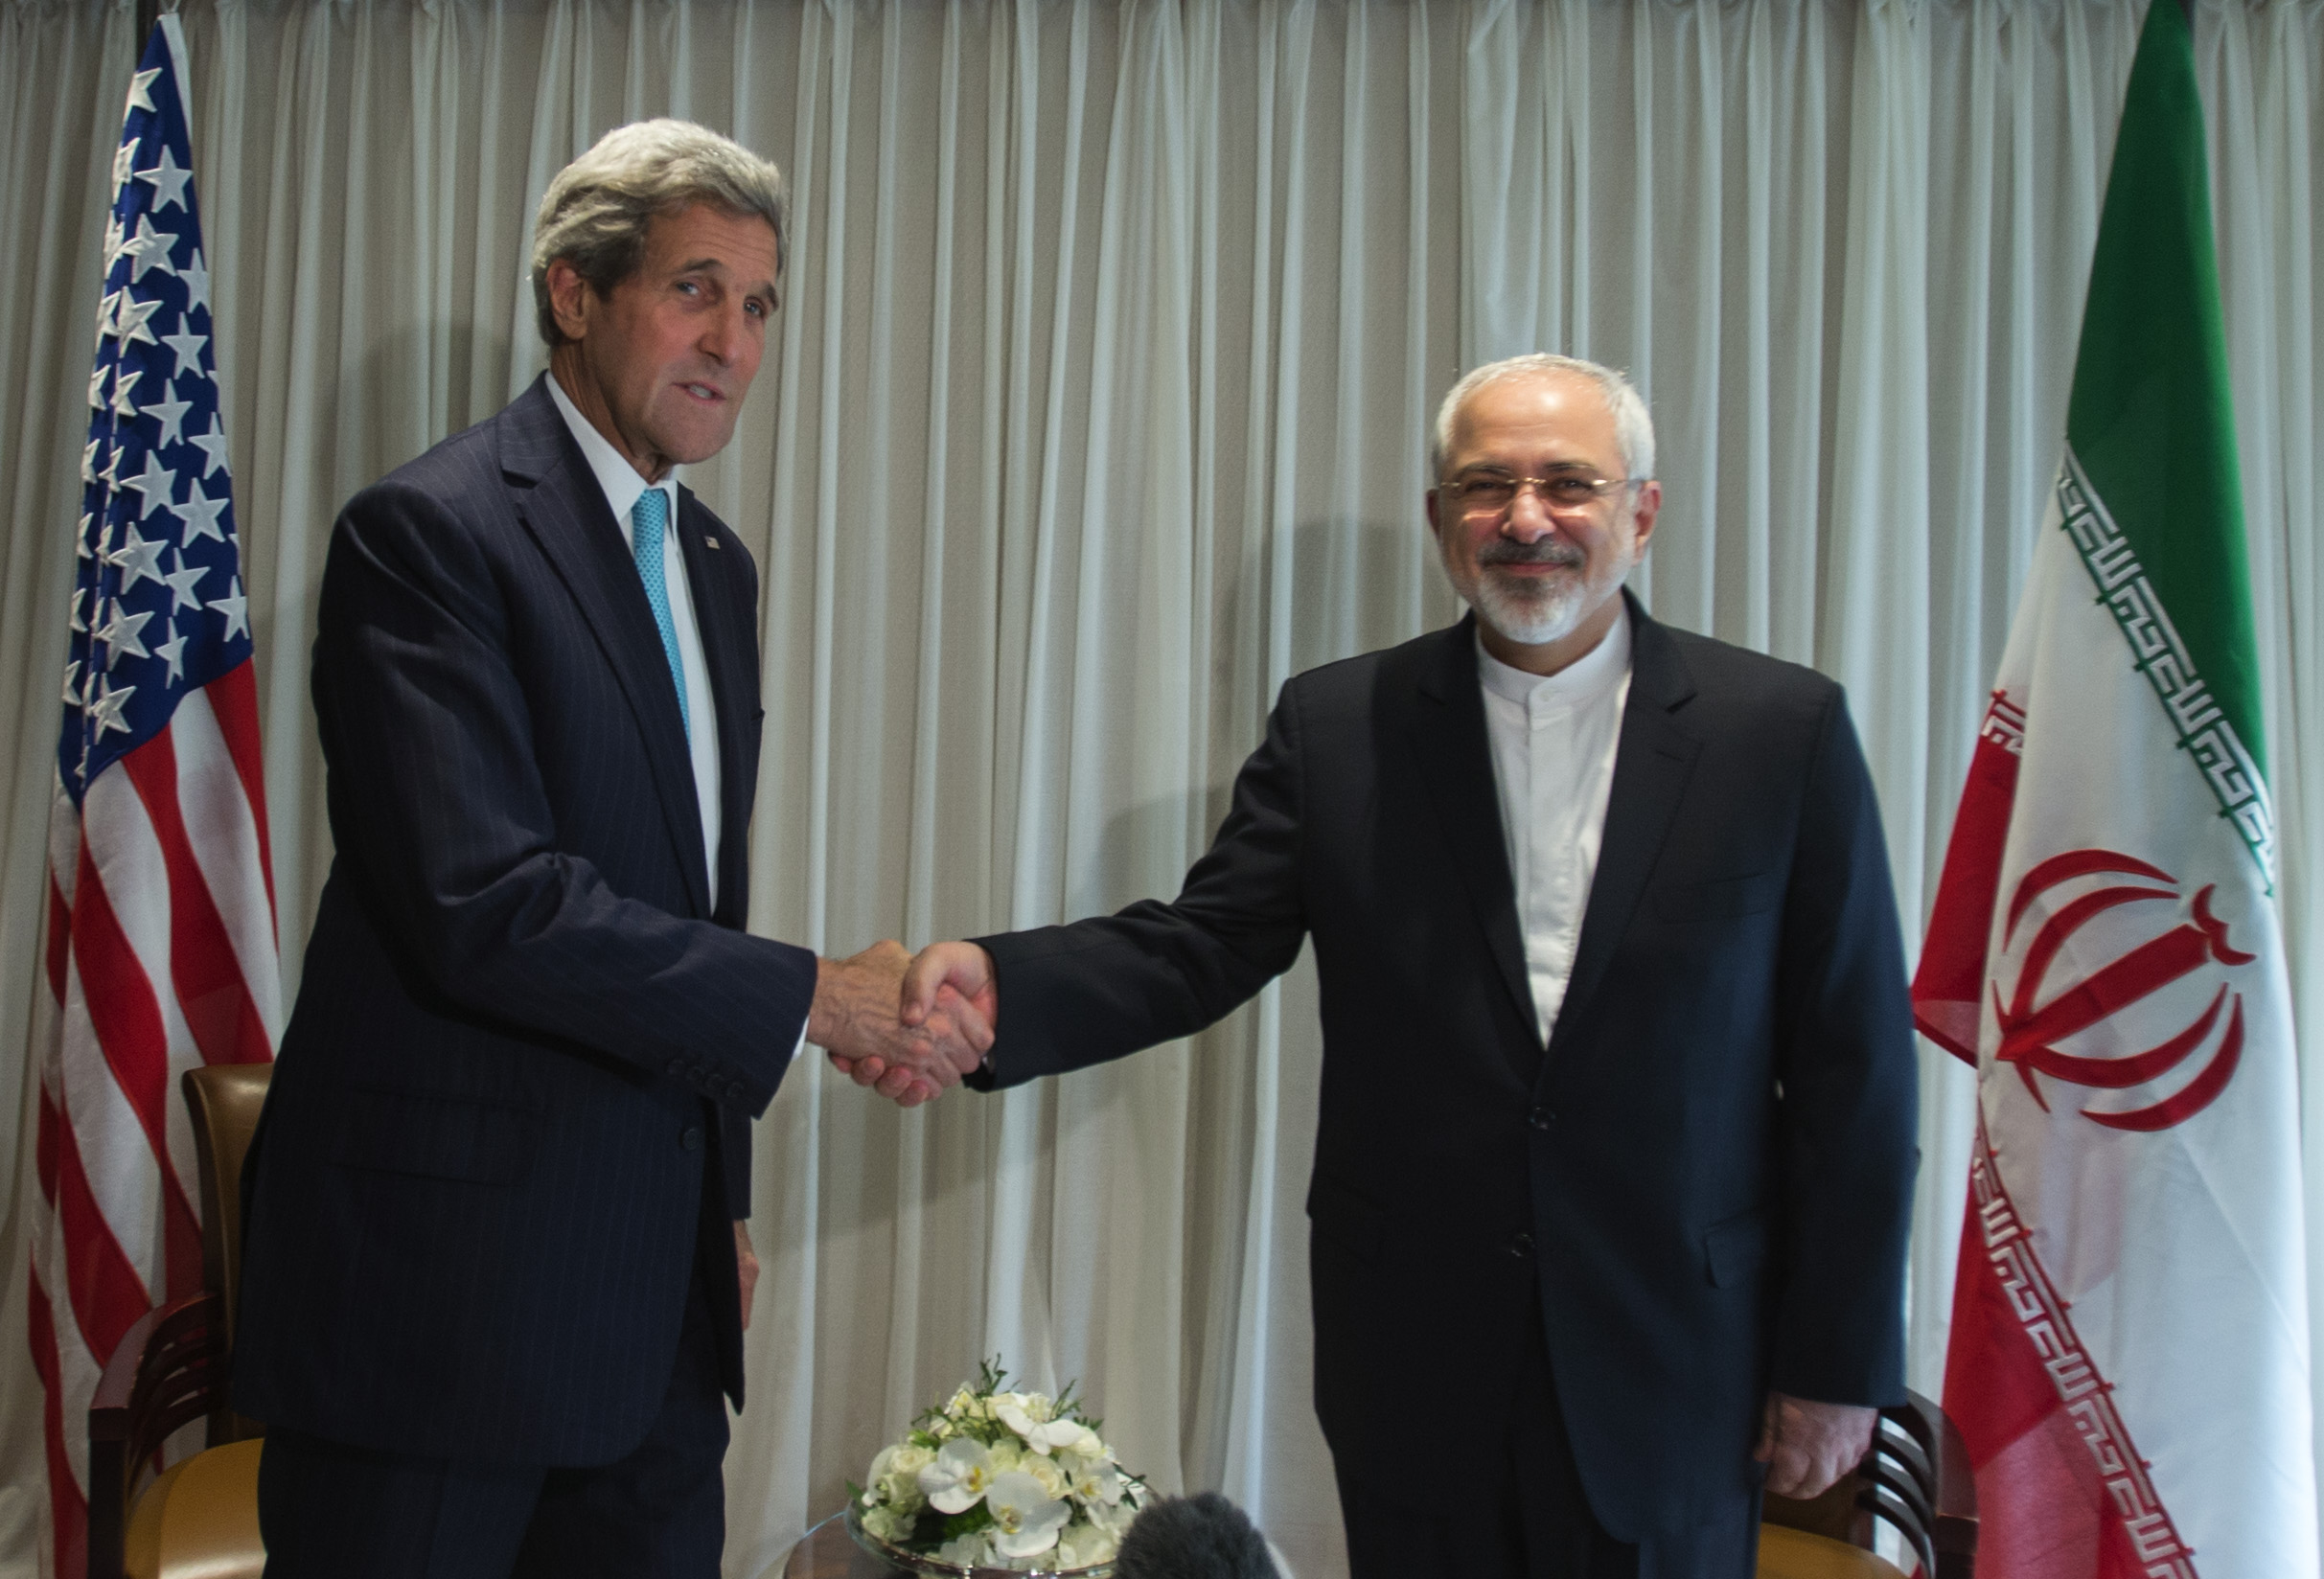 Secretary of State John Kerry meets with Iranian Foreign Minister Javad Zarif in Geneva on January 14 for a bilateral meeting to provide guidance to their negotiating teams before their next round of discussions, which begin on January 15. US State Dept. Photo